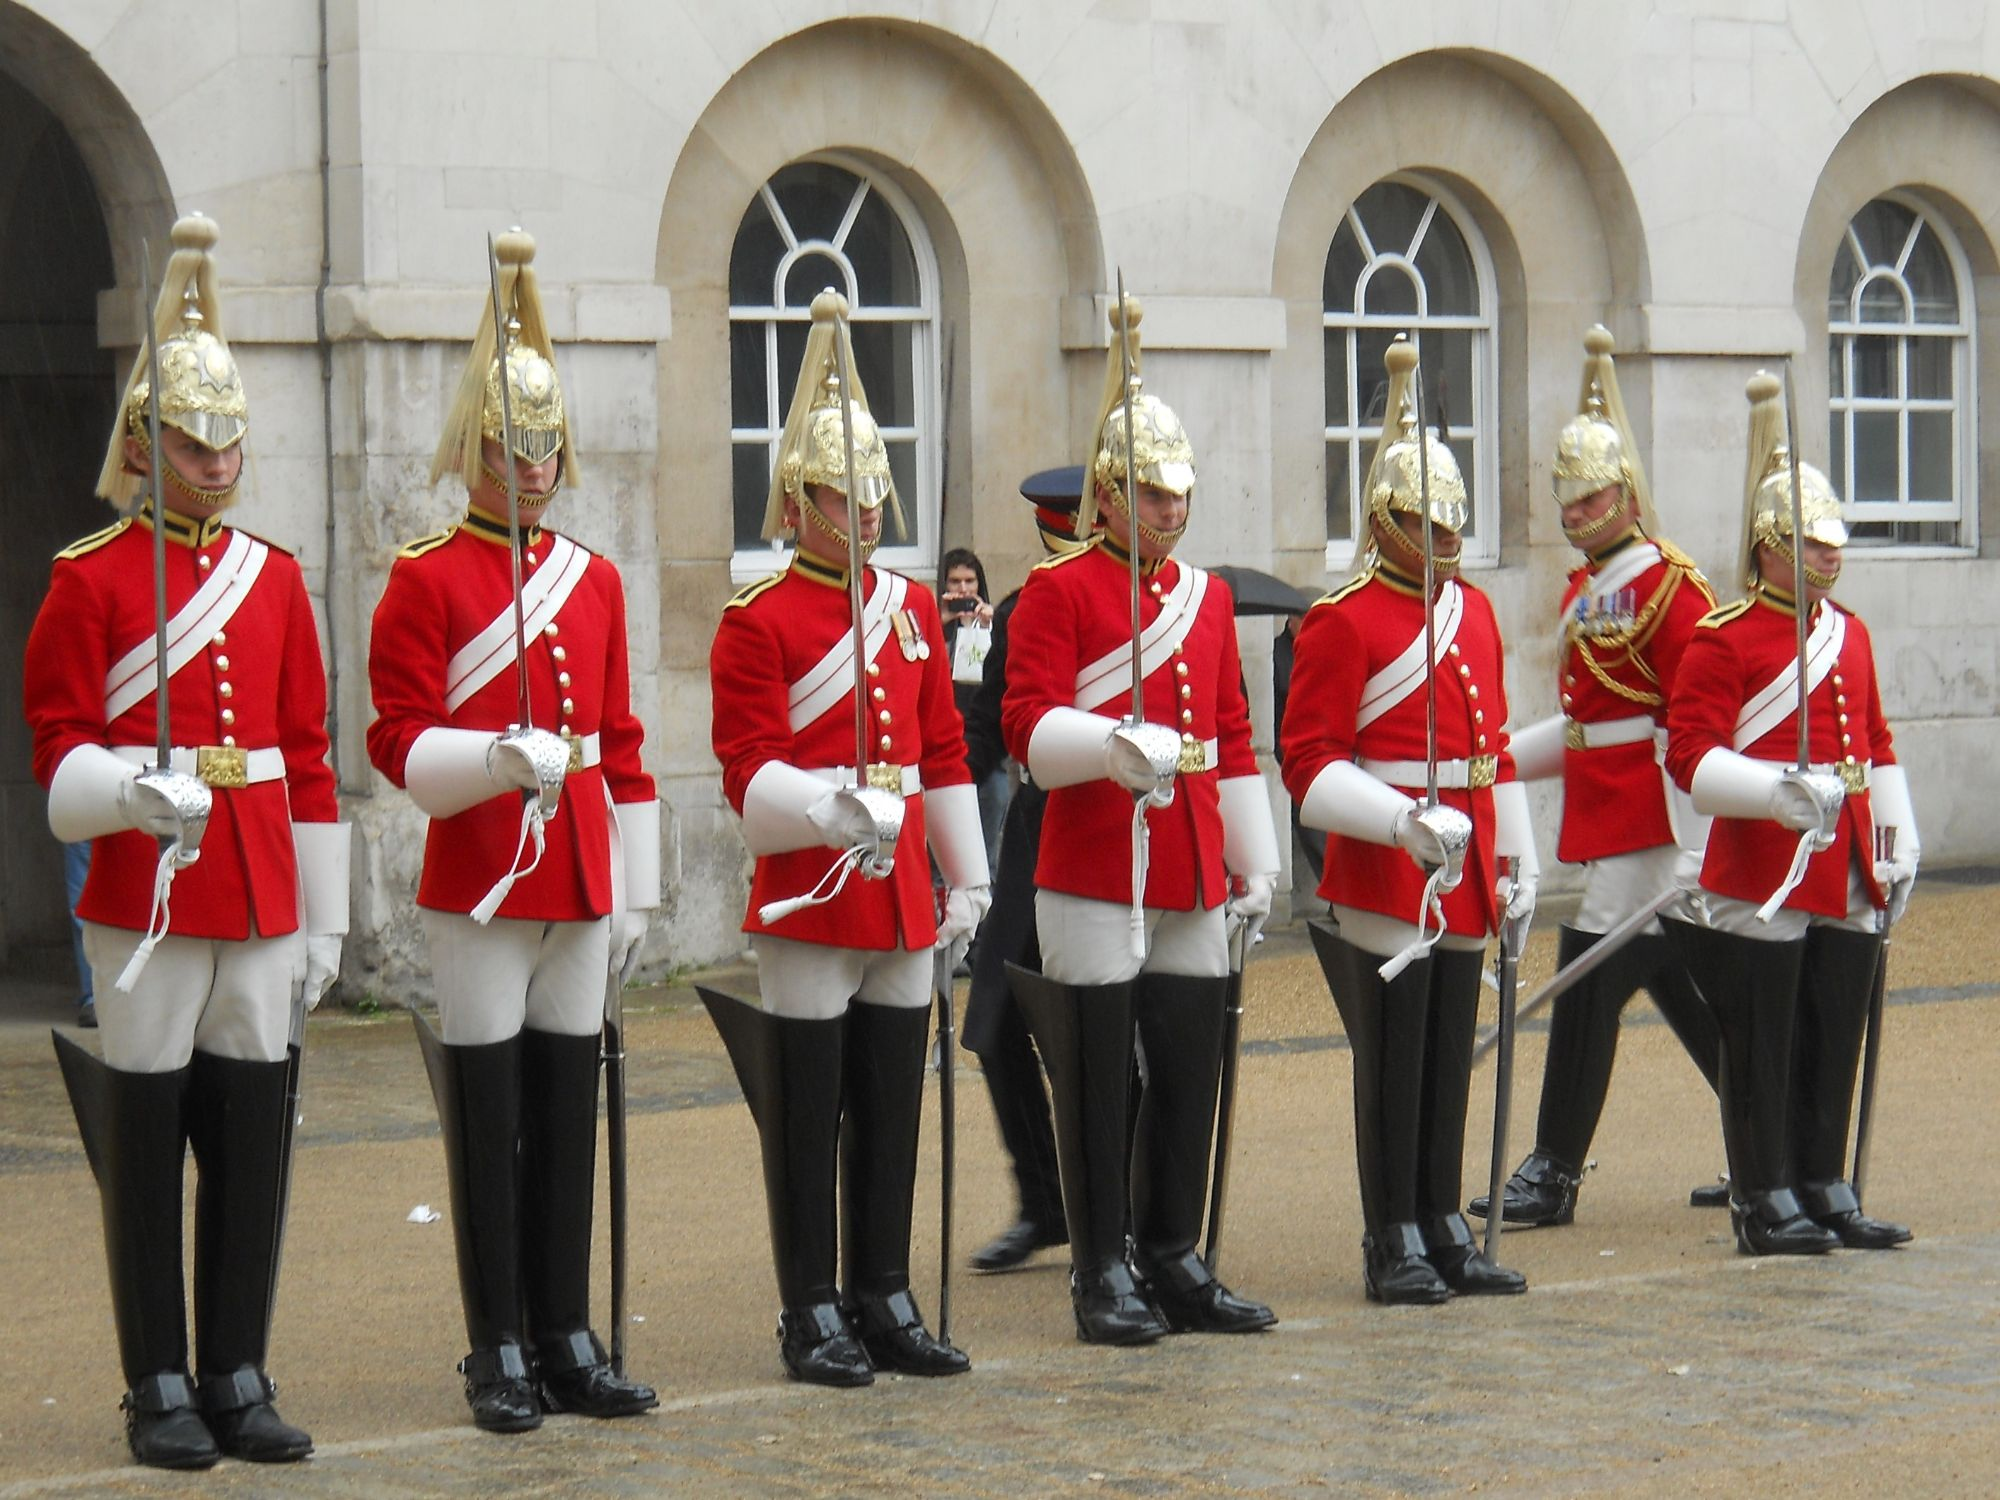 Photo of the Dismounting Ceremony in Horse Guards. Six soliders from the Life Guards regiment are standing on parade. They wear scarlet jackets, white trousers, long black boots and a helmet with a white ploom. They are each holding a sword. In the background two officers are inspecting them.